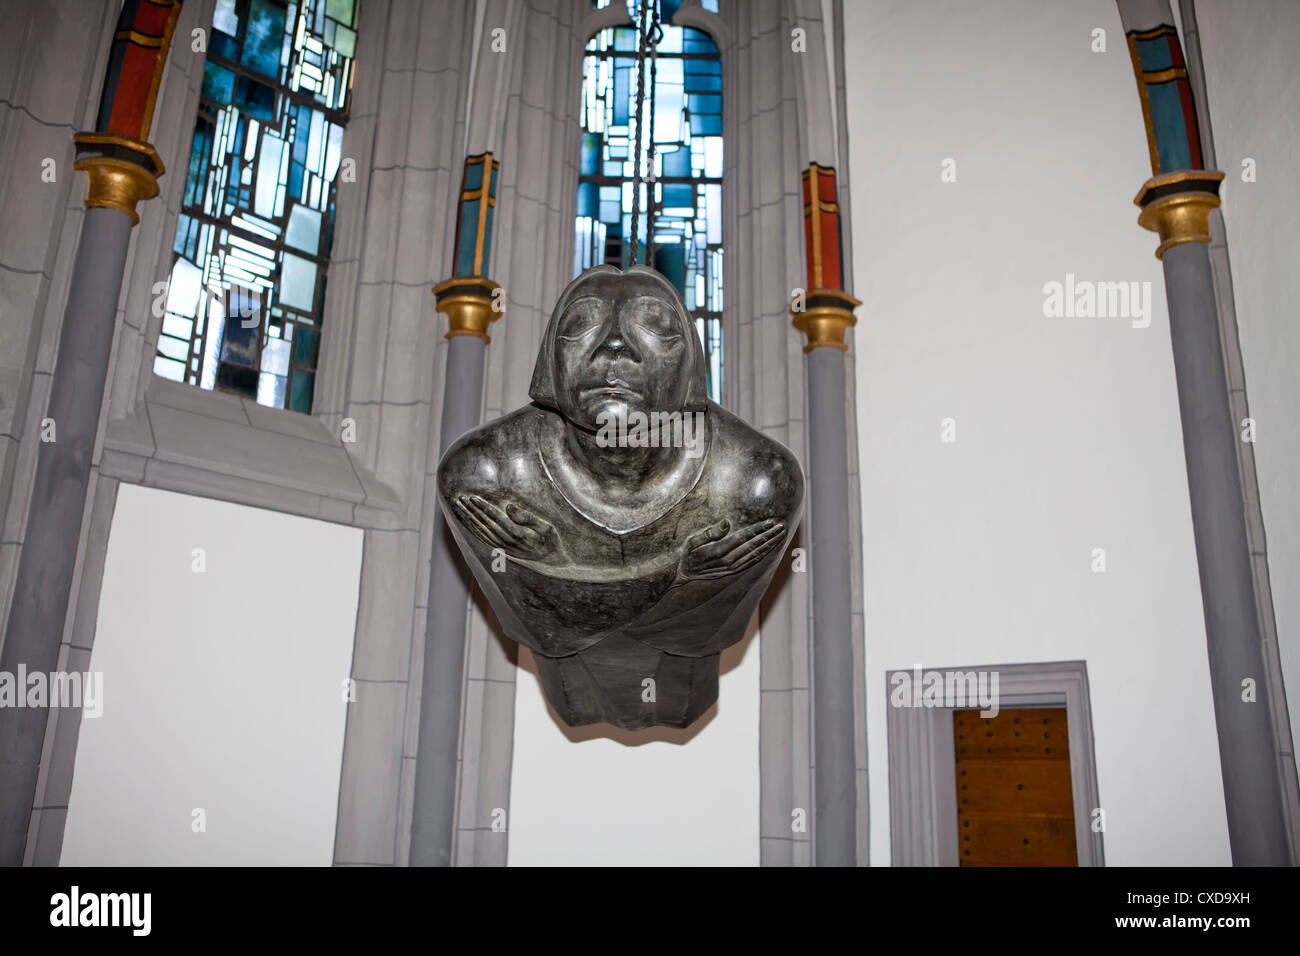 Hovering angel, sculpture with the facial features of Kaethe Kollwitz, by Ernst Barlach, Antoniterkirche church, - Stock Image